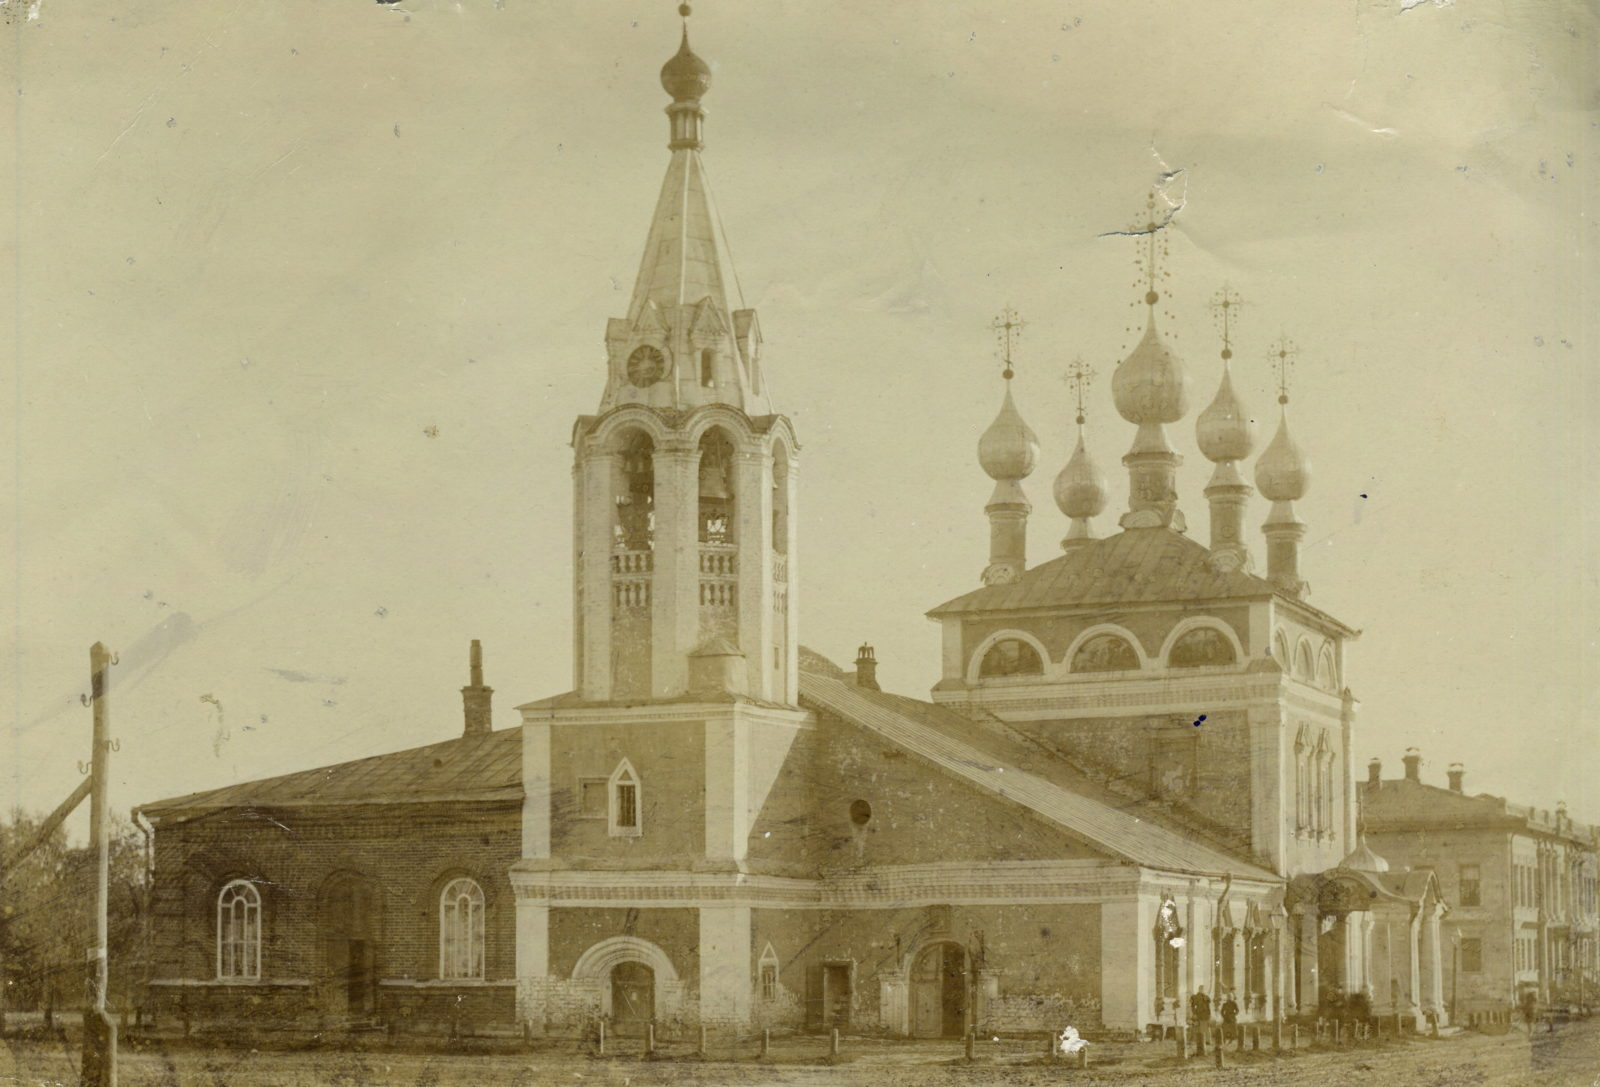 Murom, Ascension Church. View from the south. 1890 - 1900.